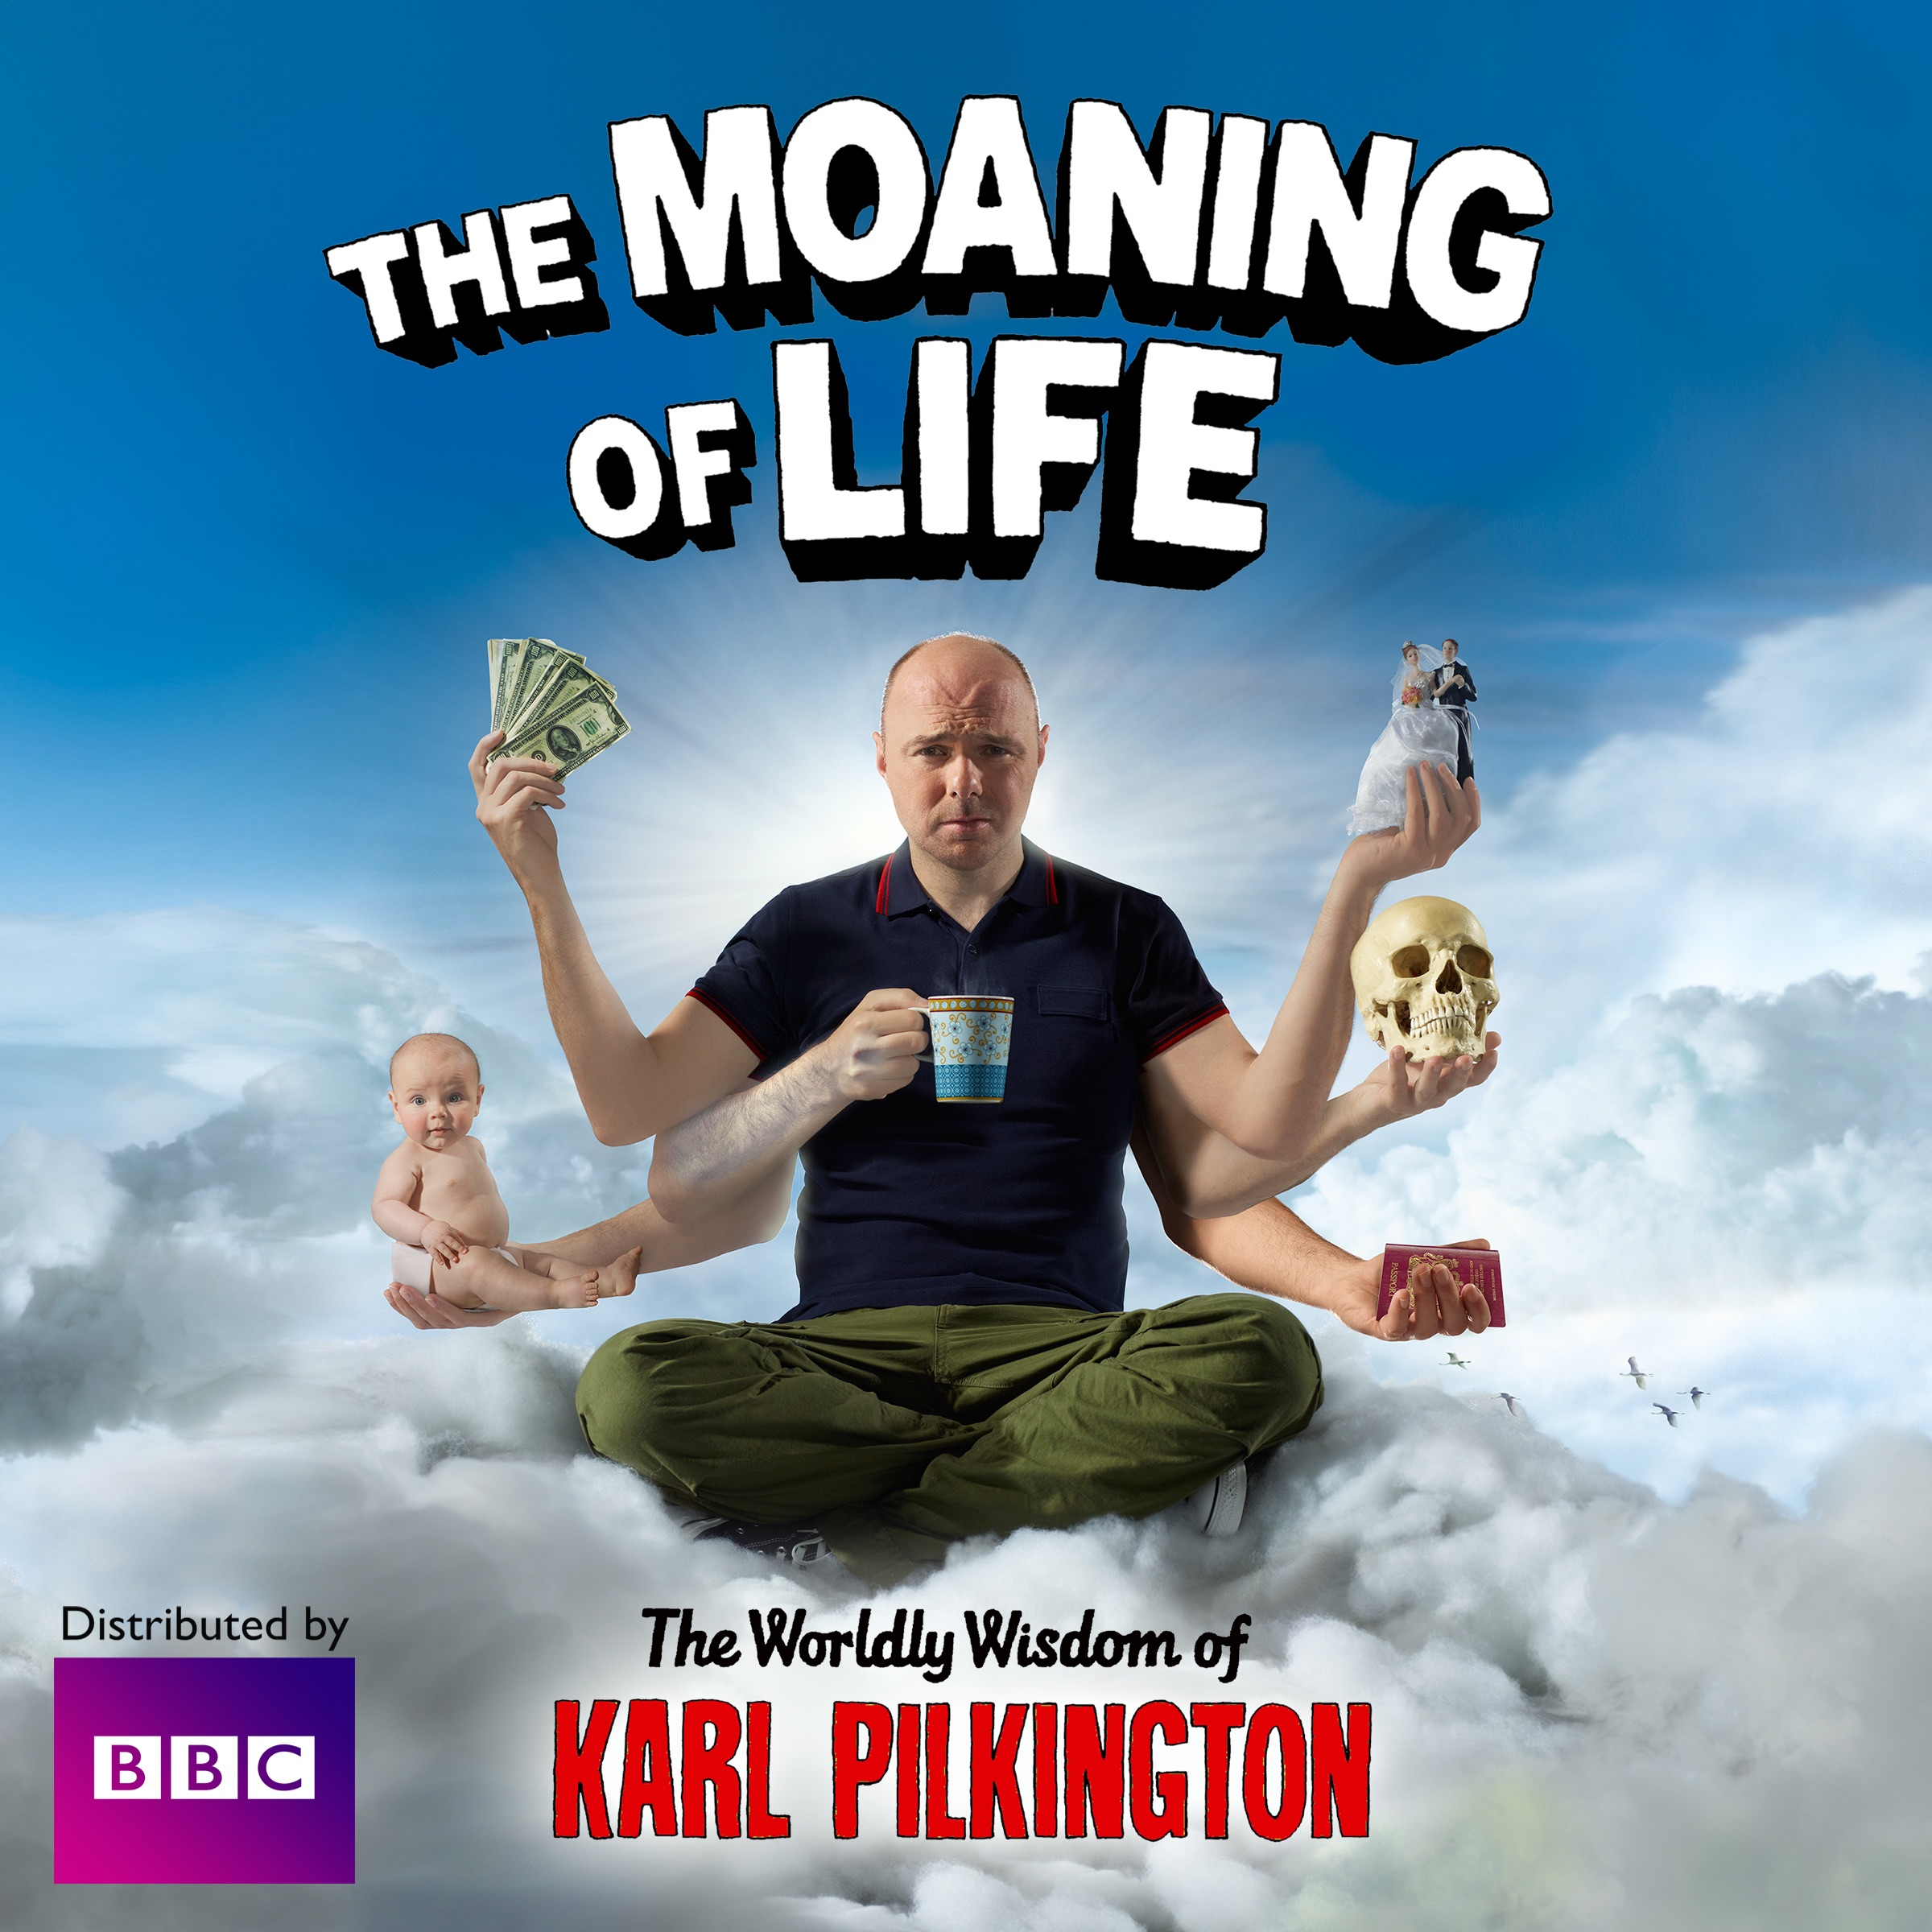 2400x2400sr Jpg: The Moaning Of Life, Series 1 On ITunes